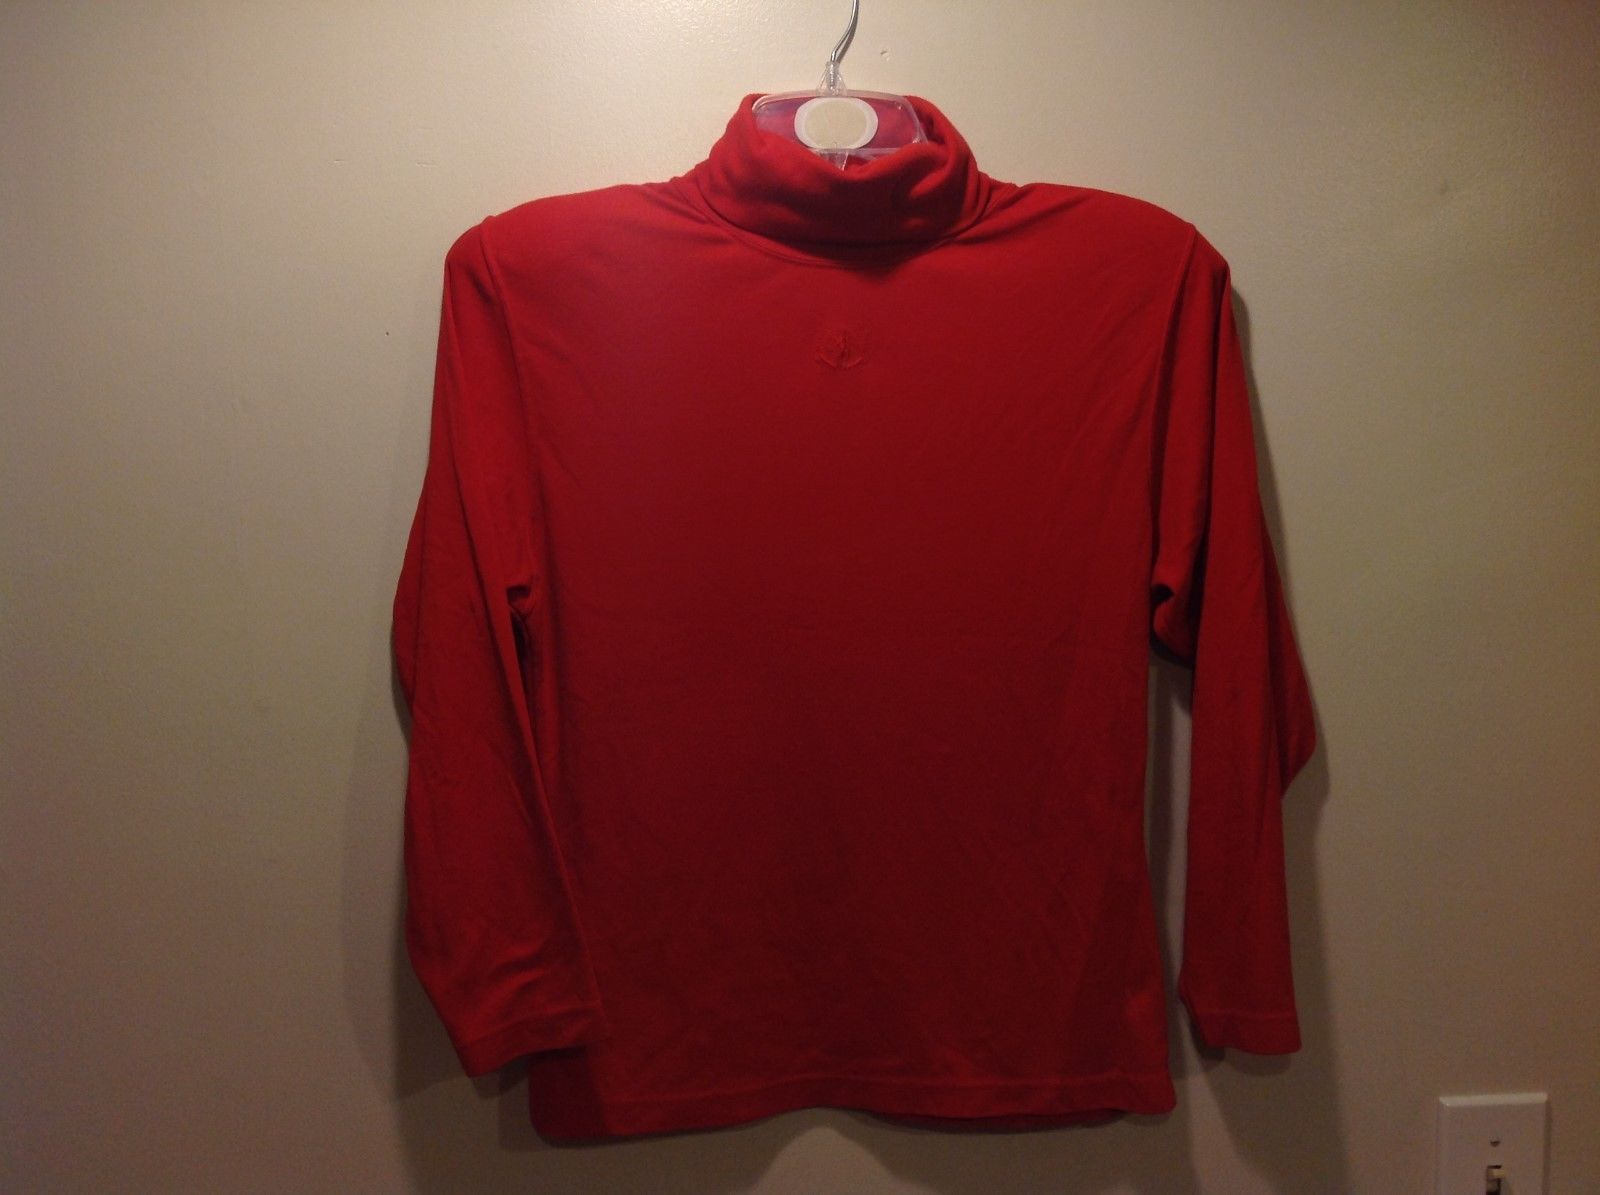 Autograph American Clothing Scarlet Red-Orange Turtleneck Sweater Sz M